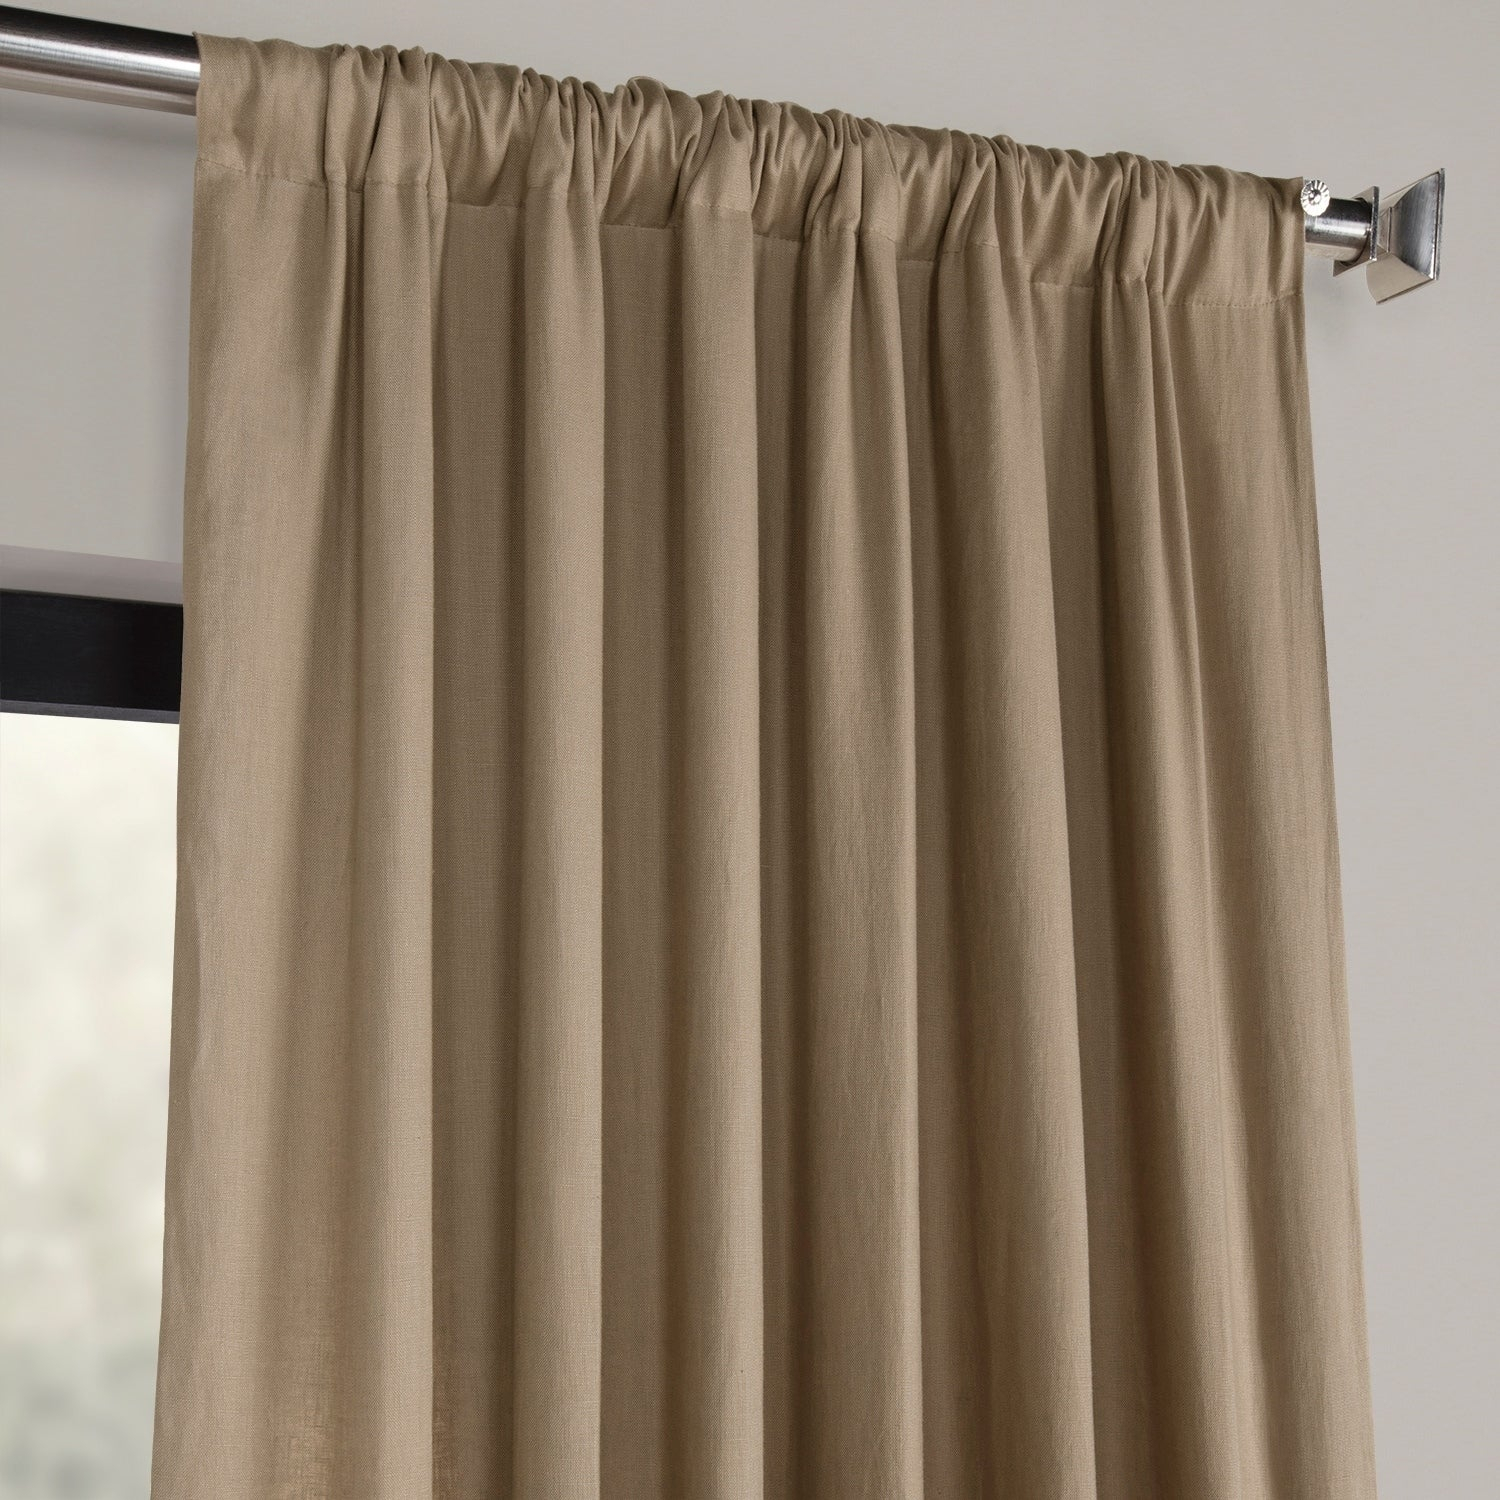 Shop Exclusive Fabrics French Linen Lined Curtain Panel With French Linen Lined Curtain Panels (View 13 of 20)